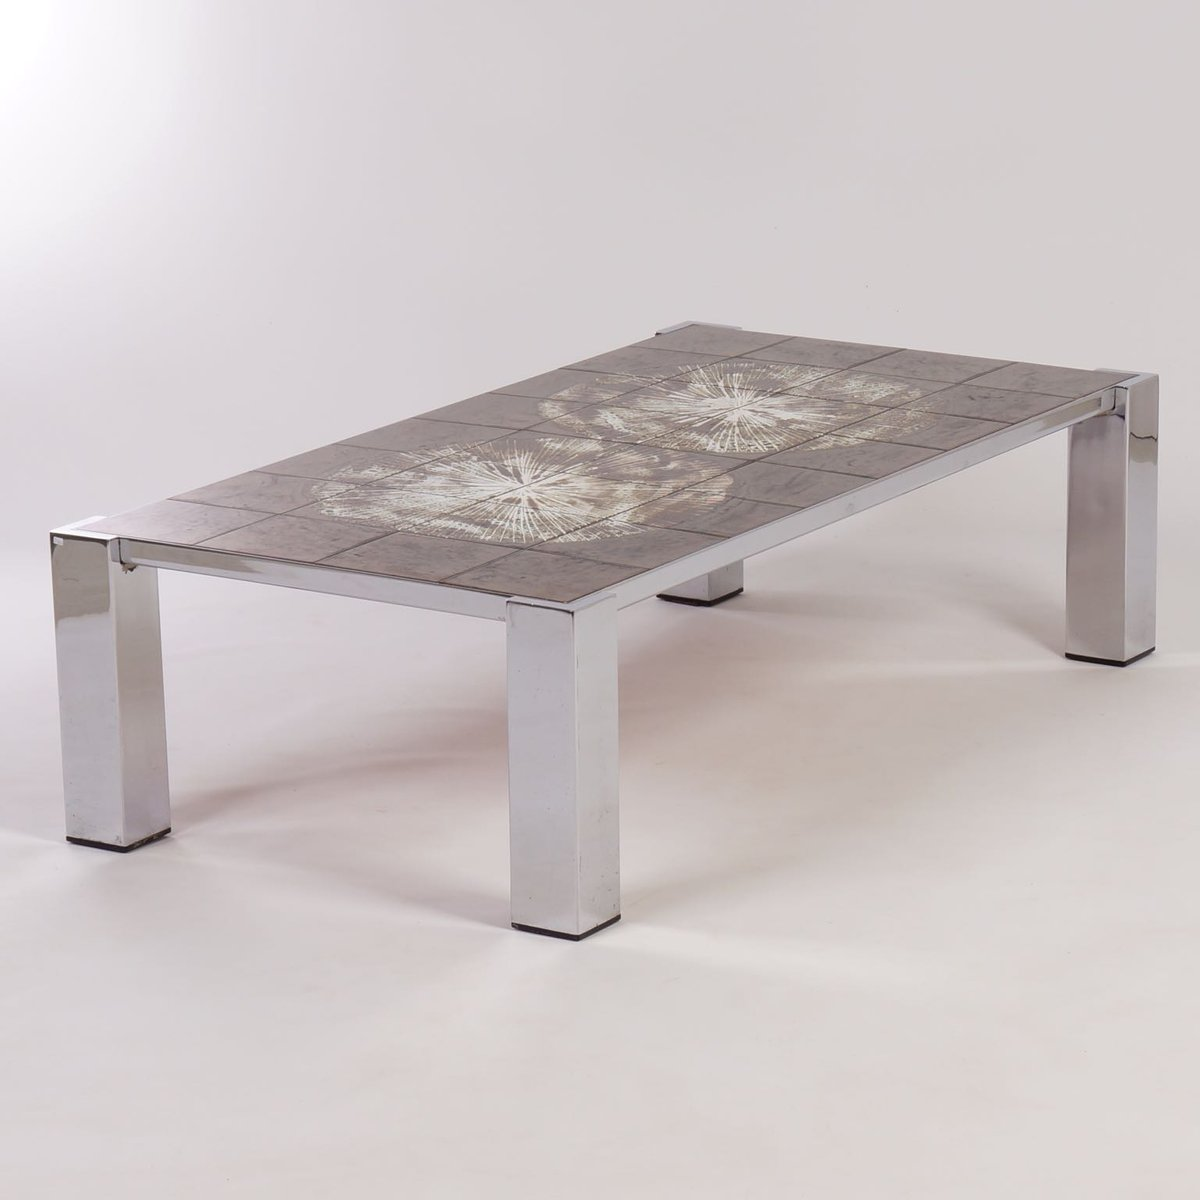 Meuble Tibetain Table Basse Peinte Table Basse Peinte Table Basse